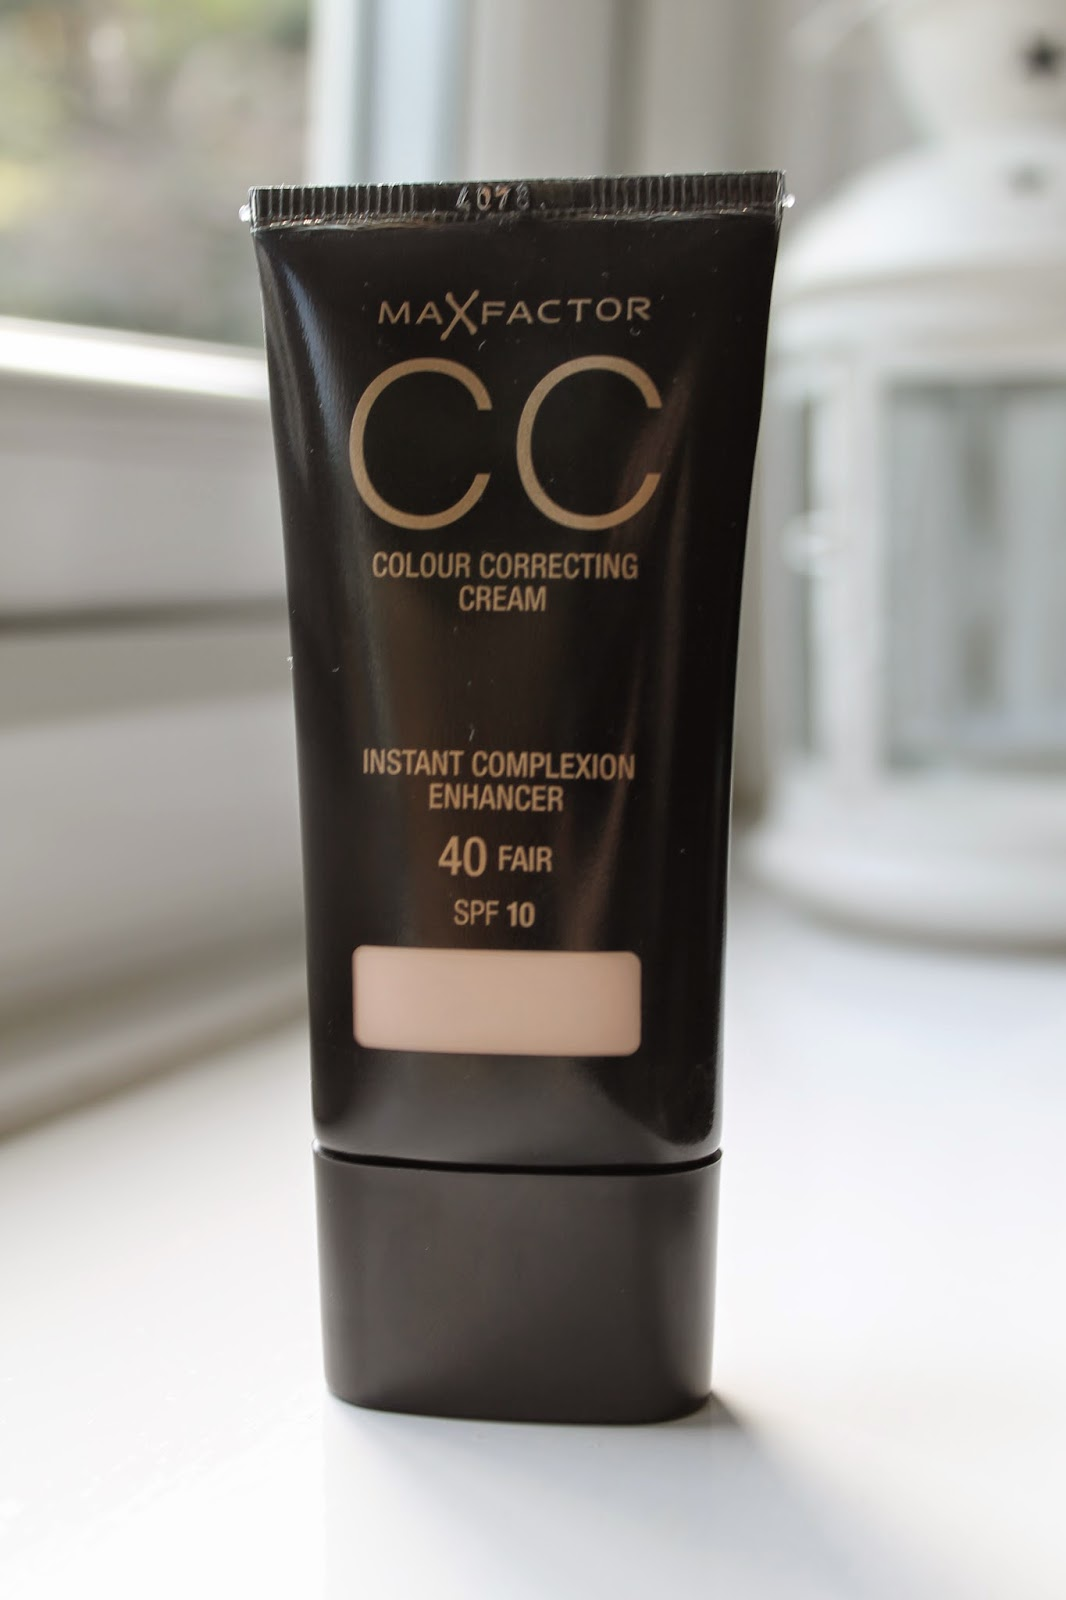 Max Factor CC Cream in Fair 40 Review